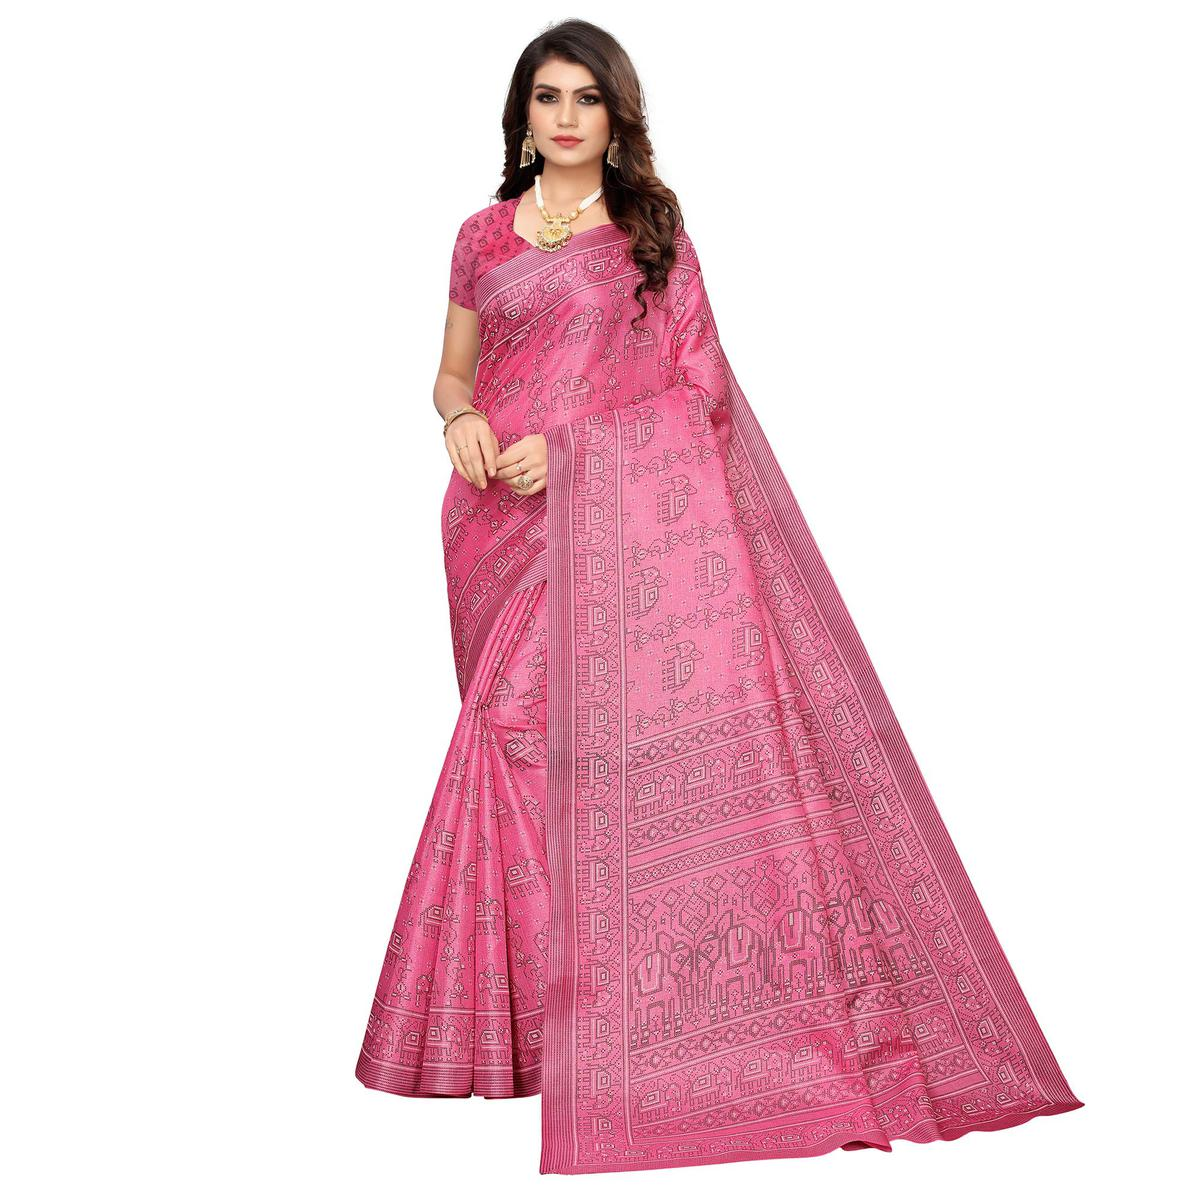 Lovely Pink Colored Casual Elephant Printed Khadi Silk Saree